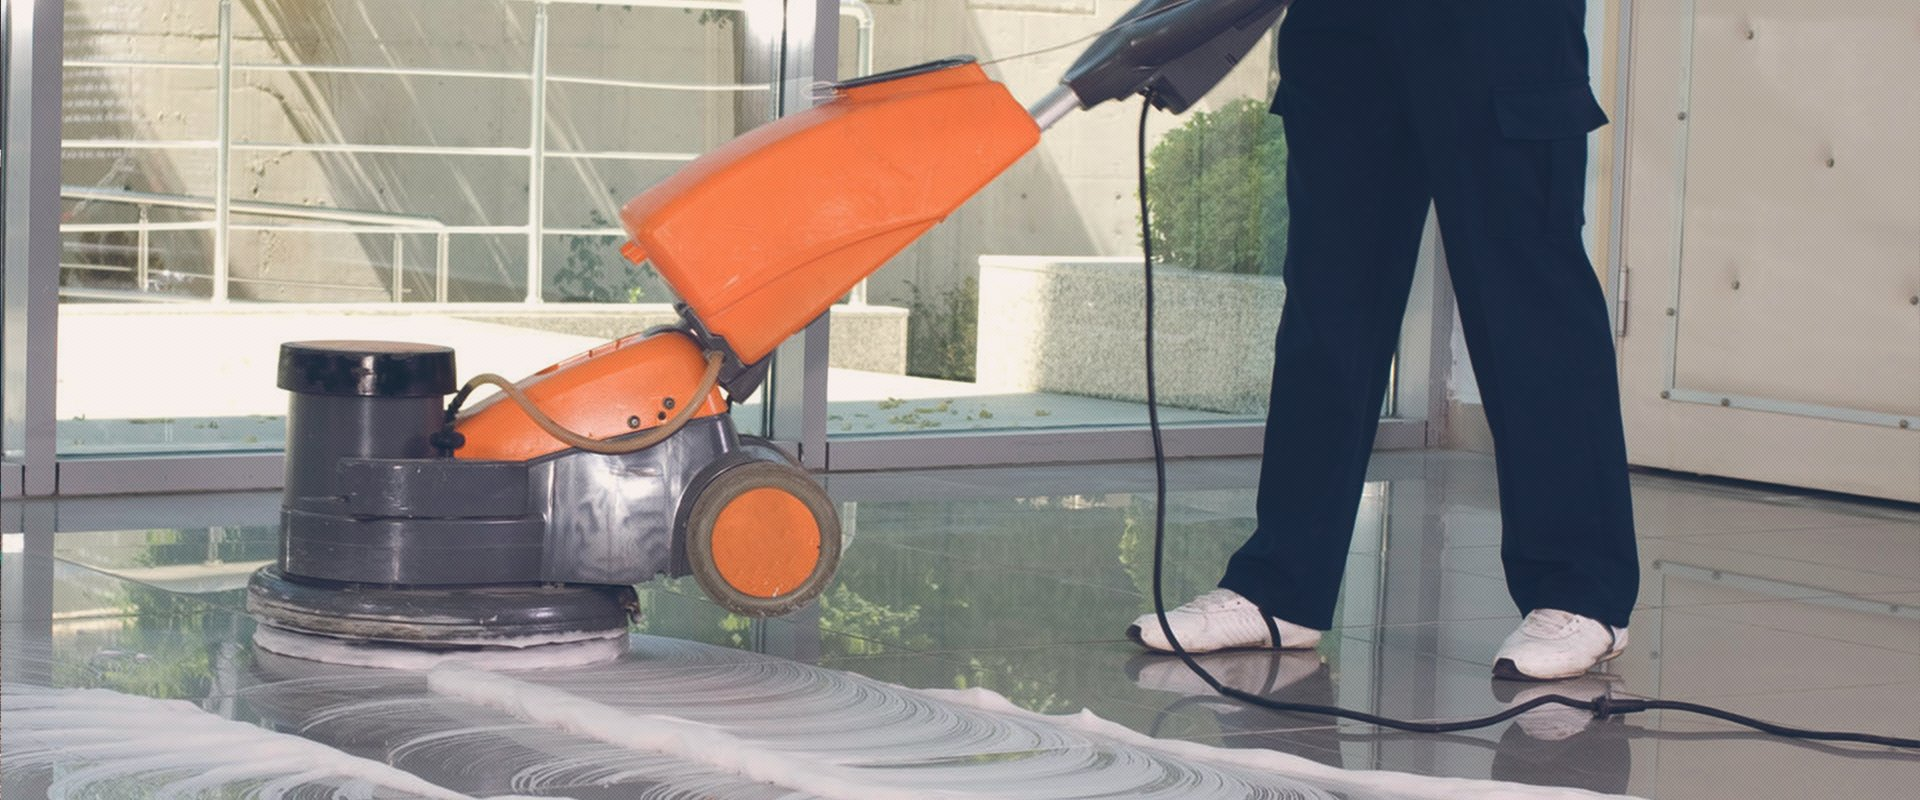 Looking For A Floor Scrubbing And Floor Polishing Machine In The Uk